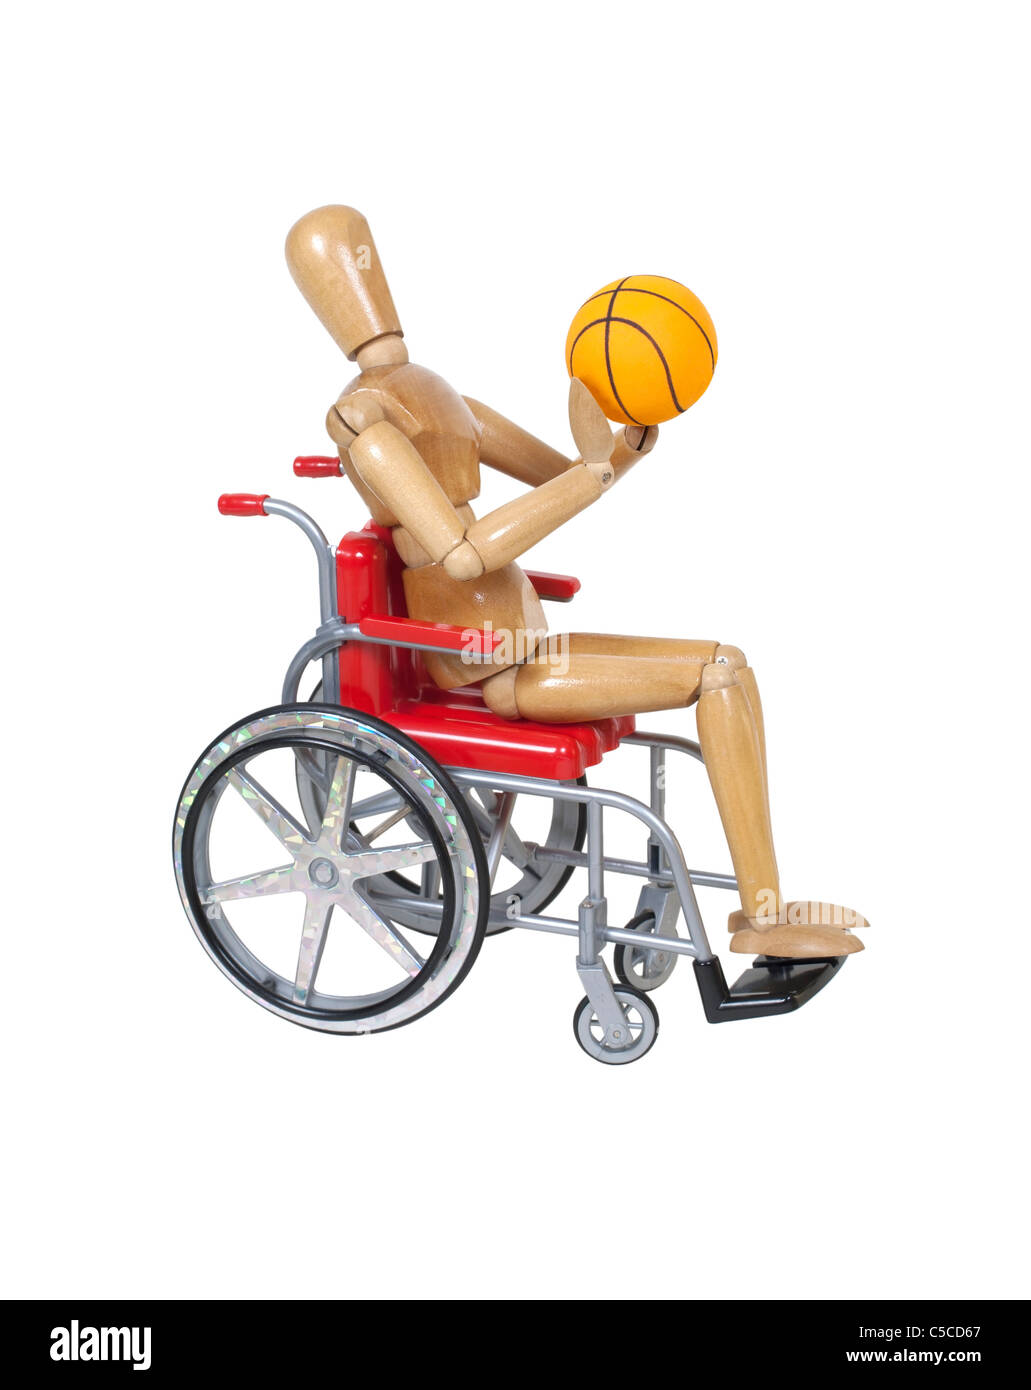 Wooden model in wheelchair shooting basketball - Stock Image